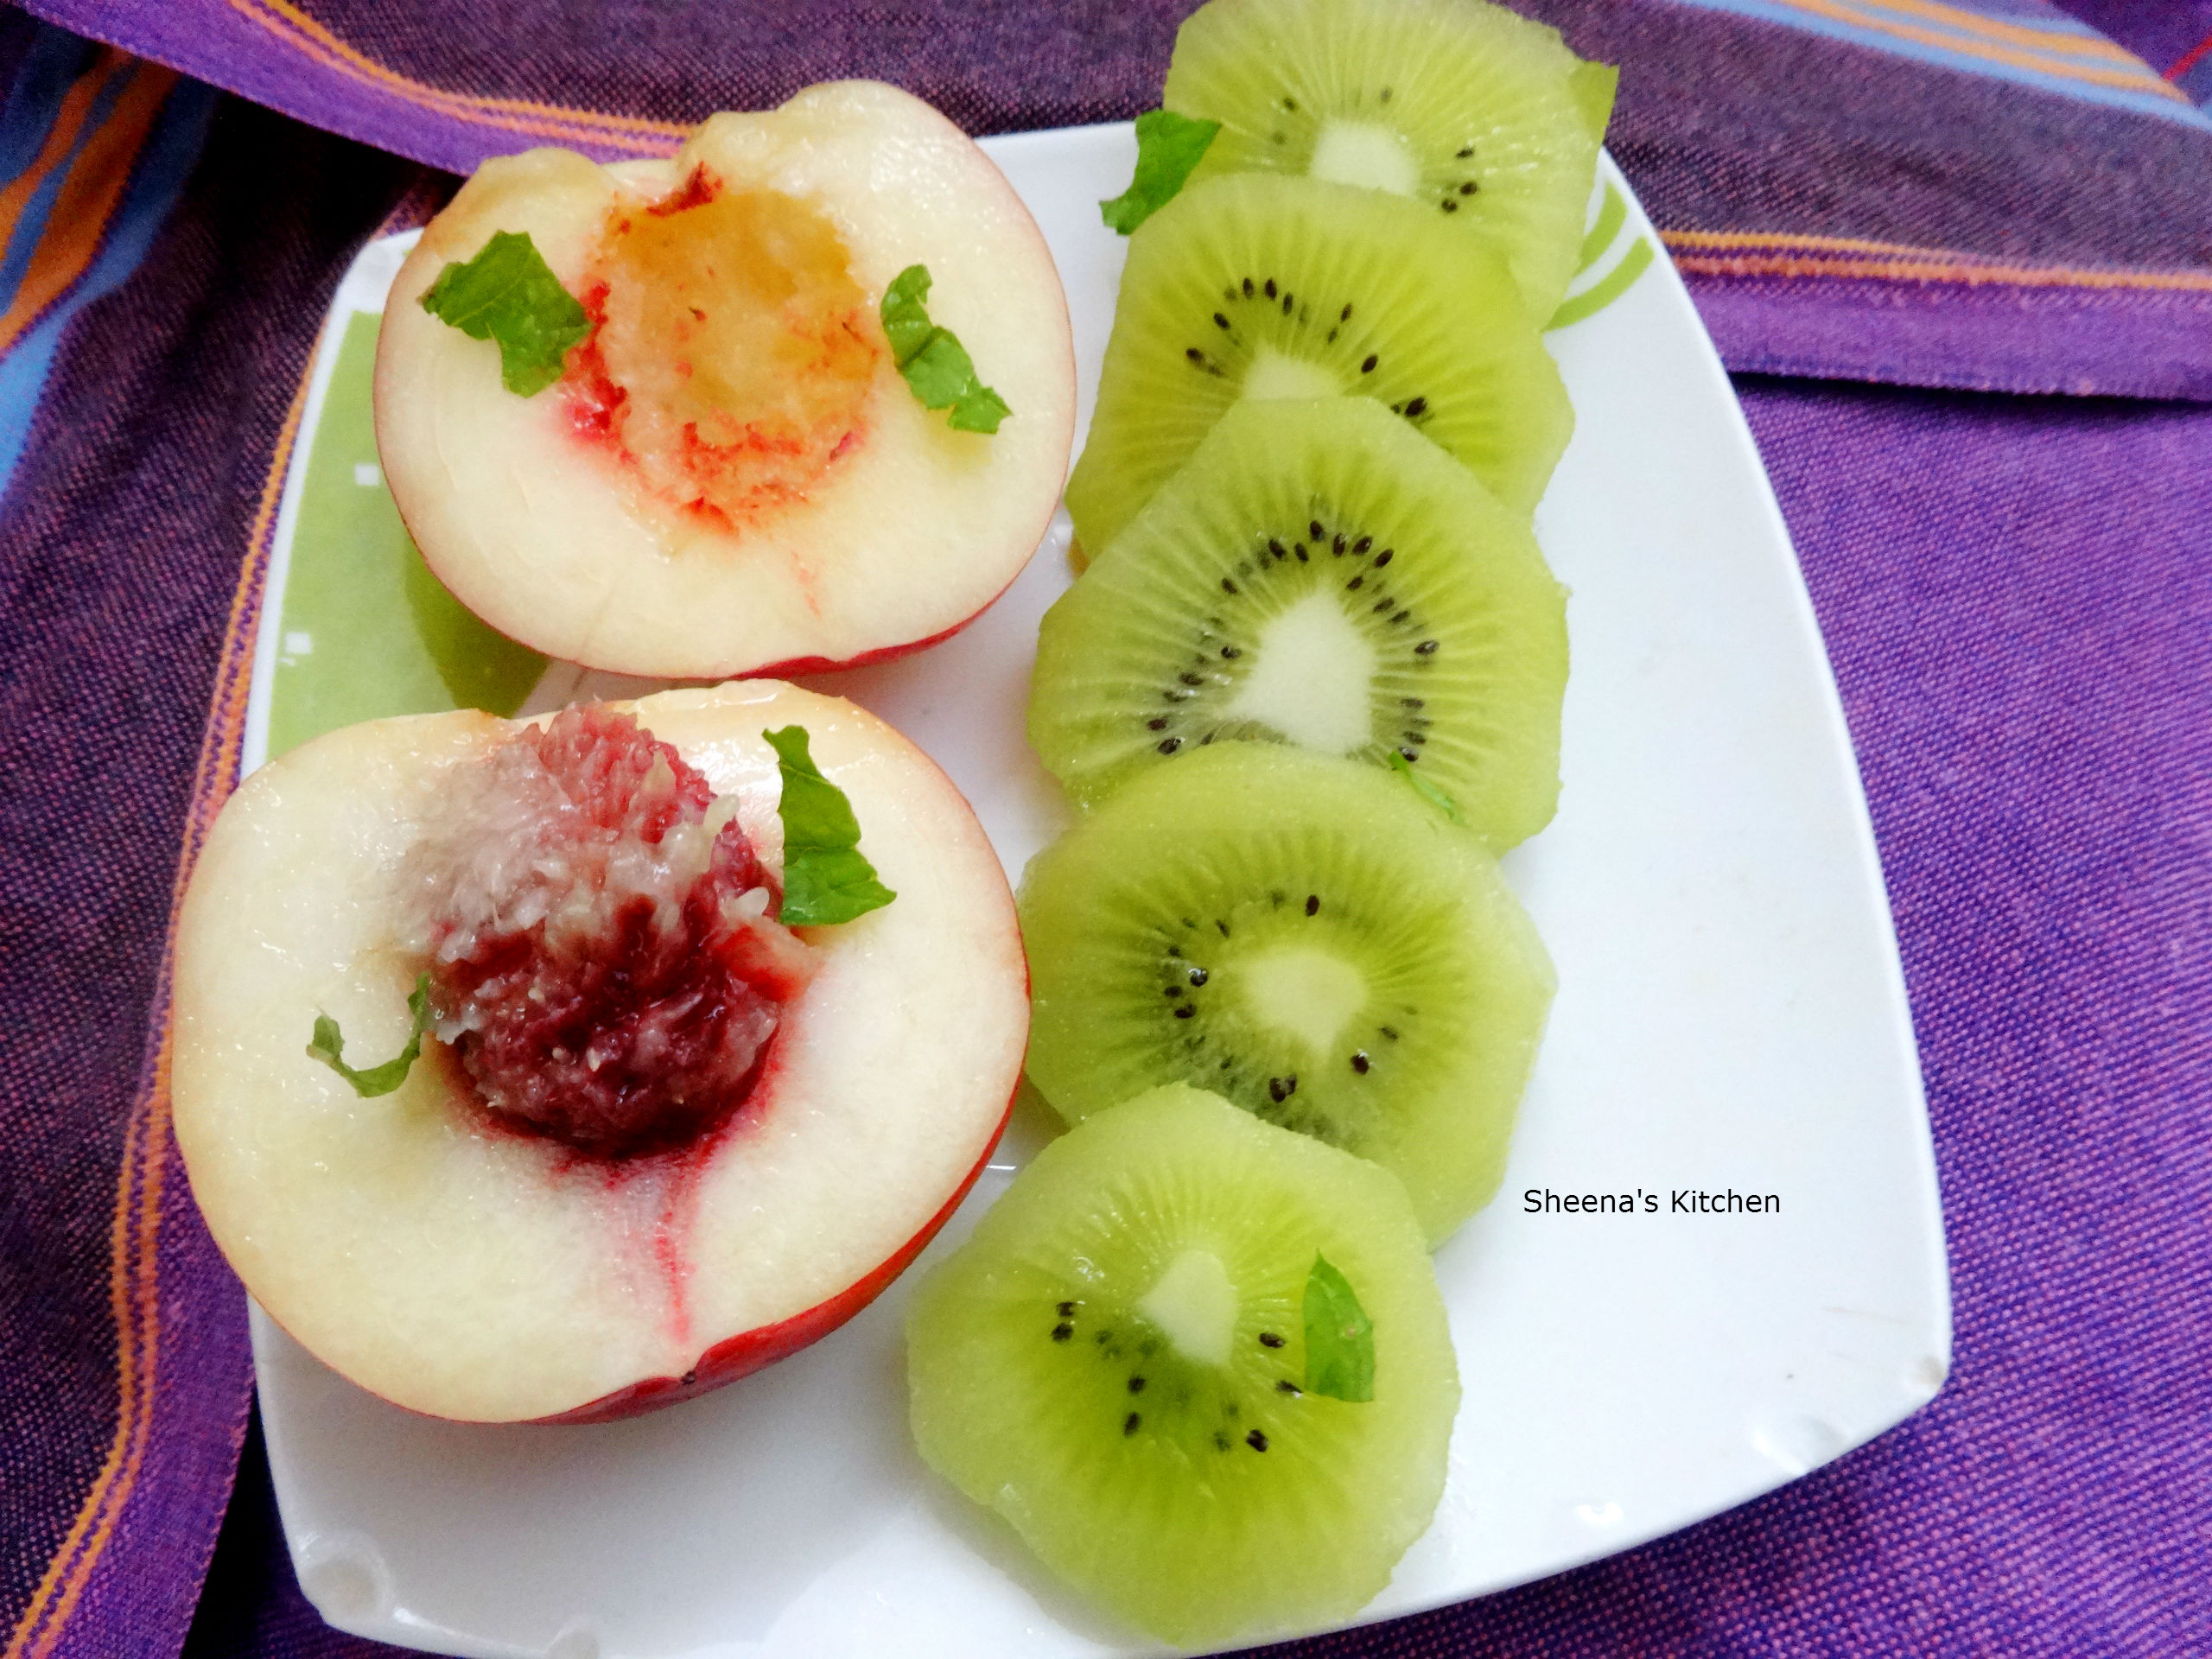 Have you tried any exotic Imported fruits? - Sheena's Kitchen